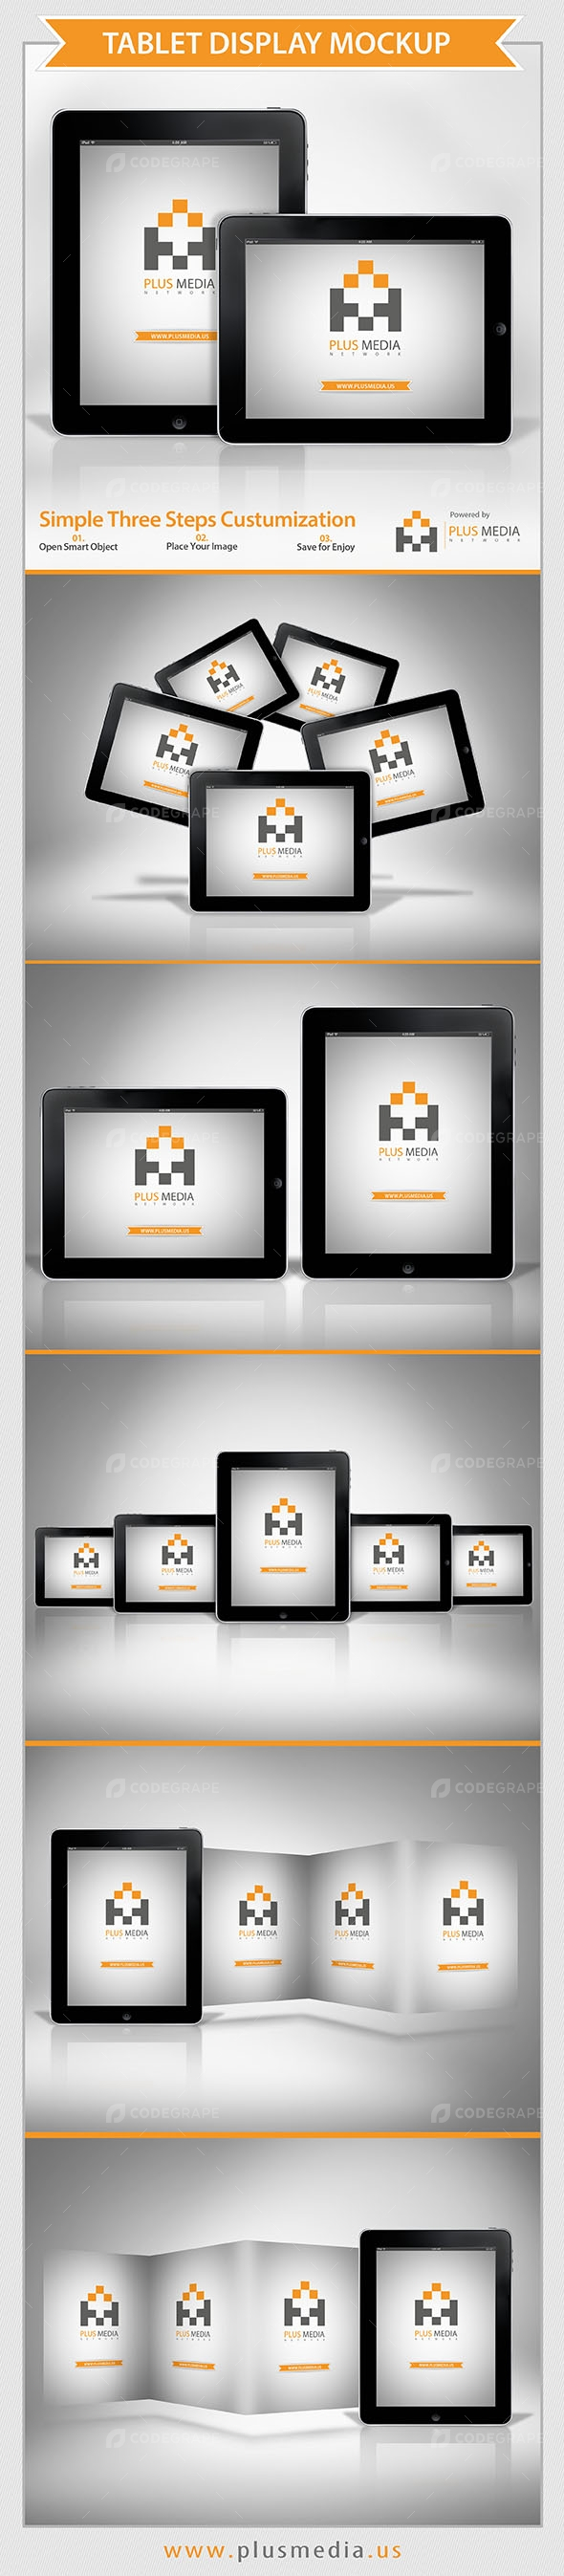 Tablet Display Mockup